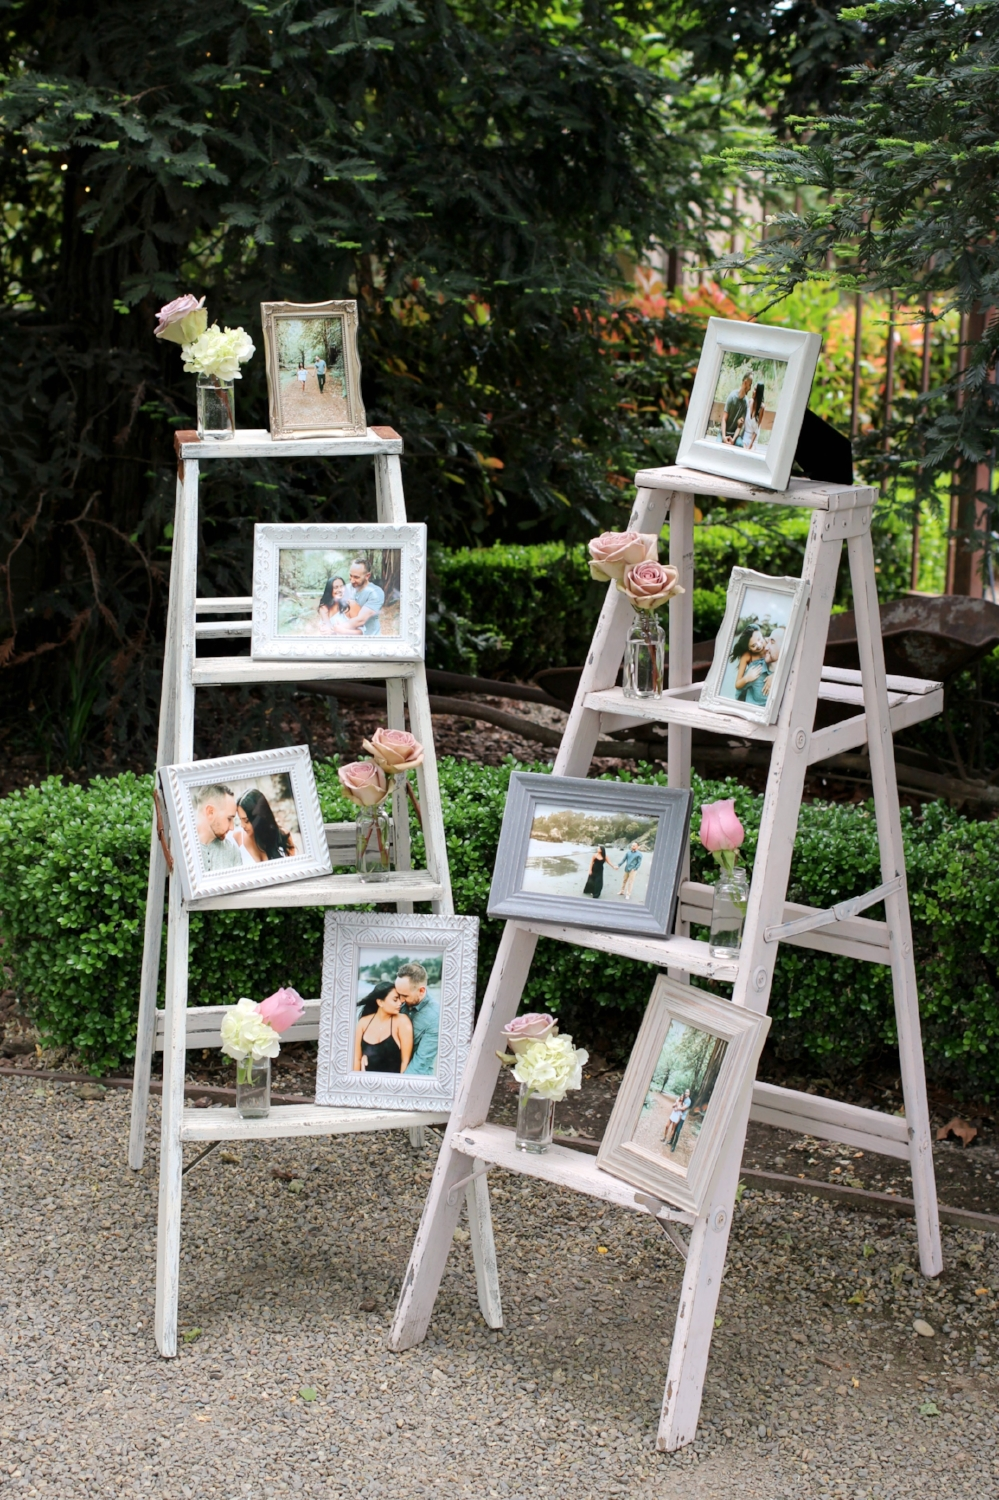 Pageo Farm Wedding - Photo Ladder Display